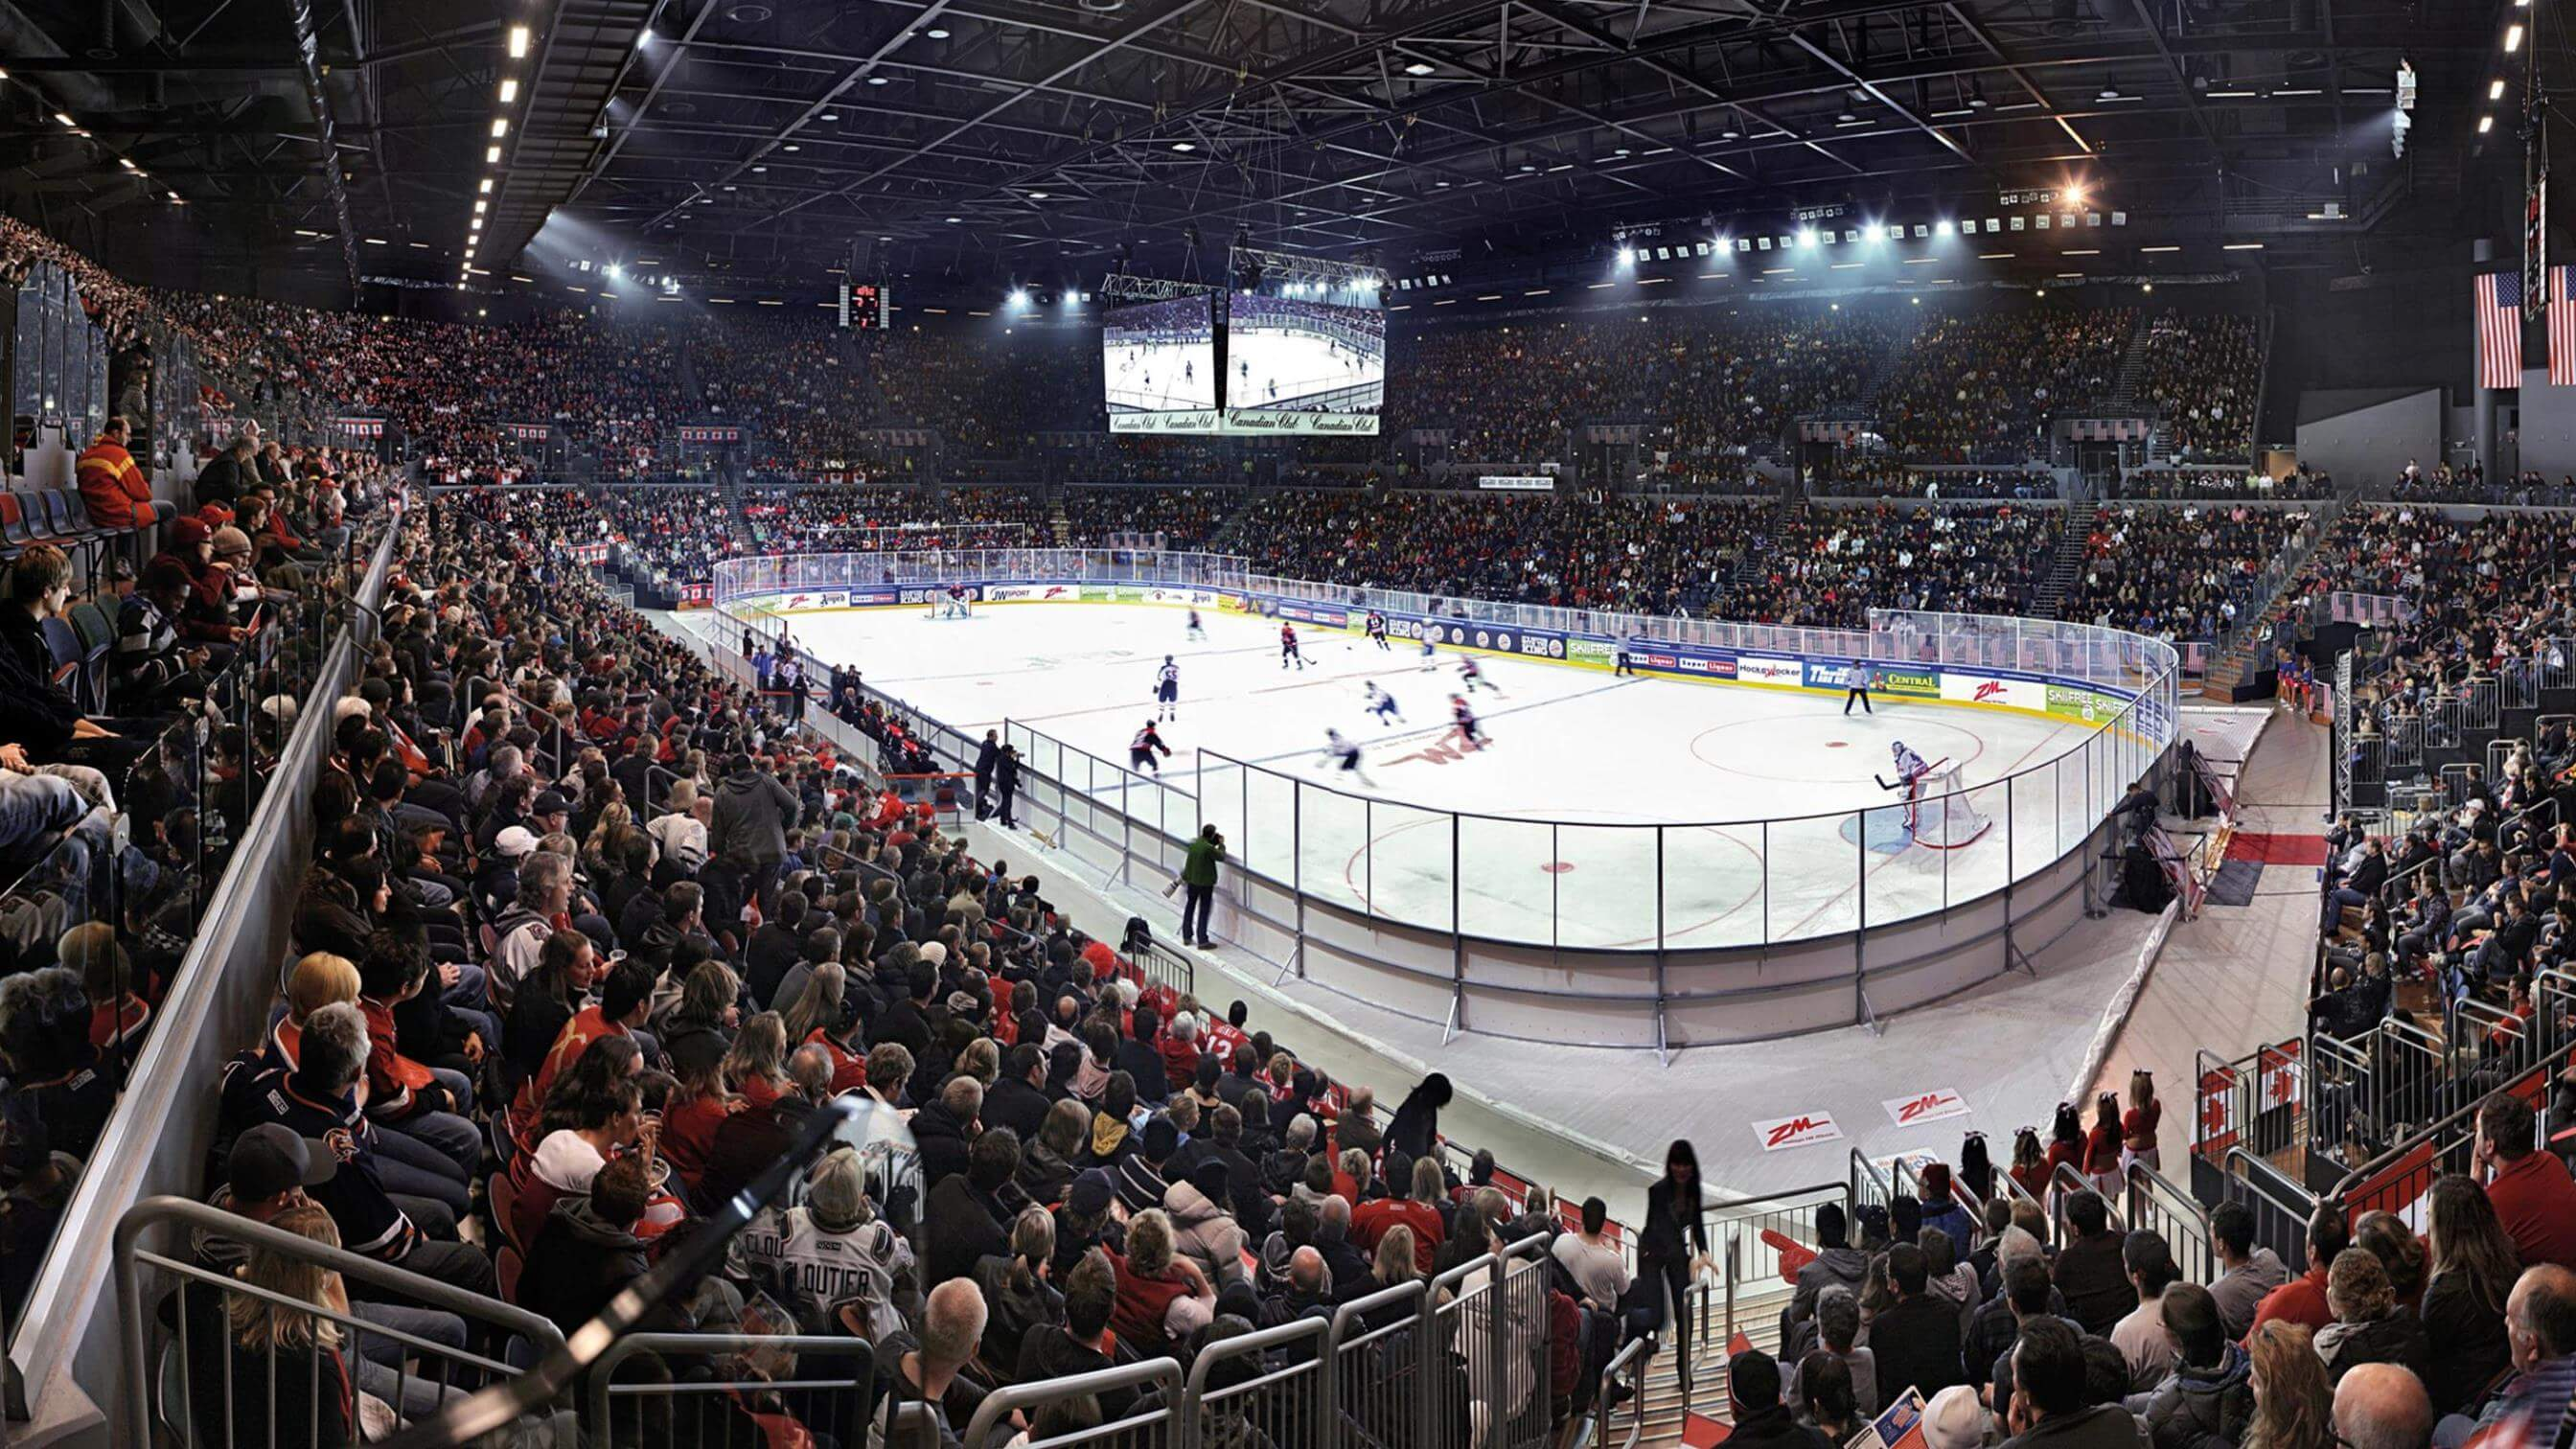 Ice hockey game being played in front of large crowd